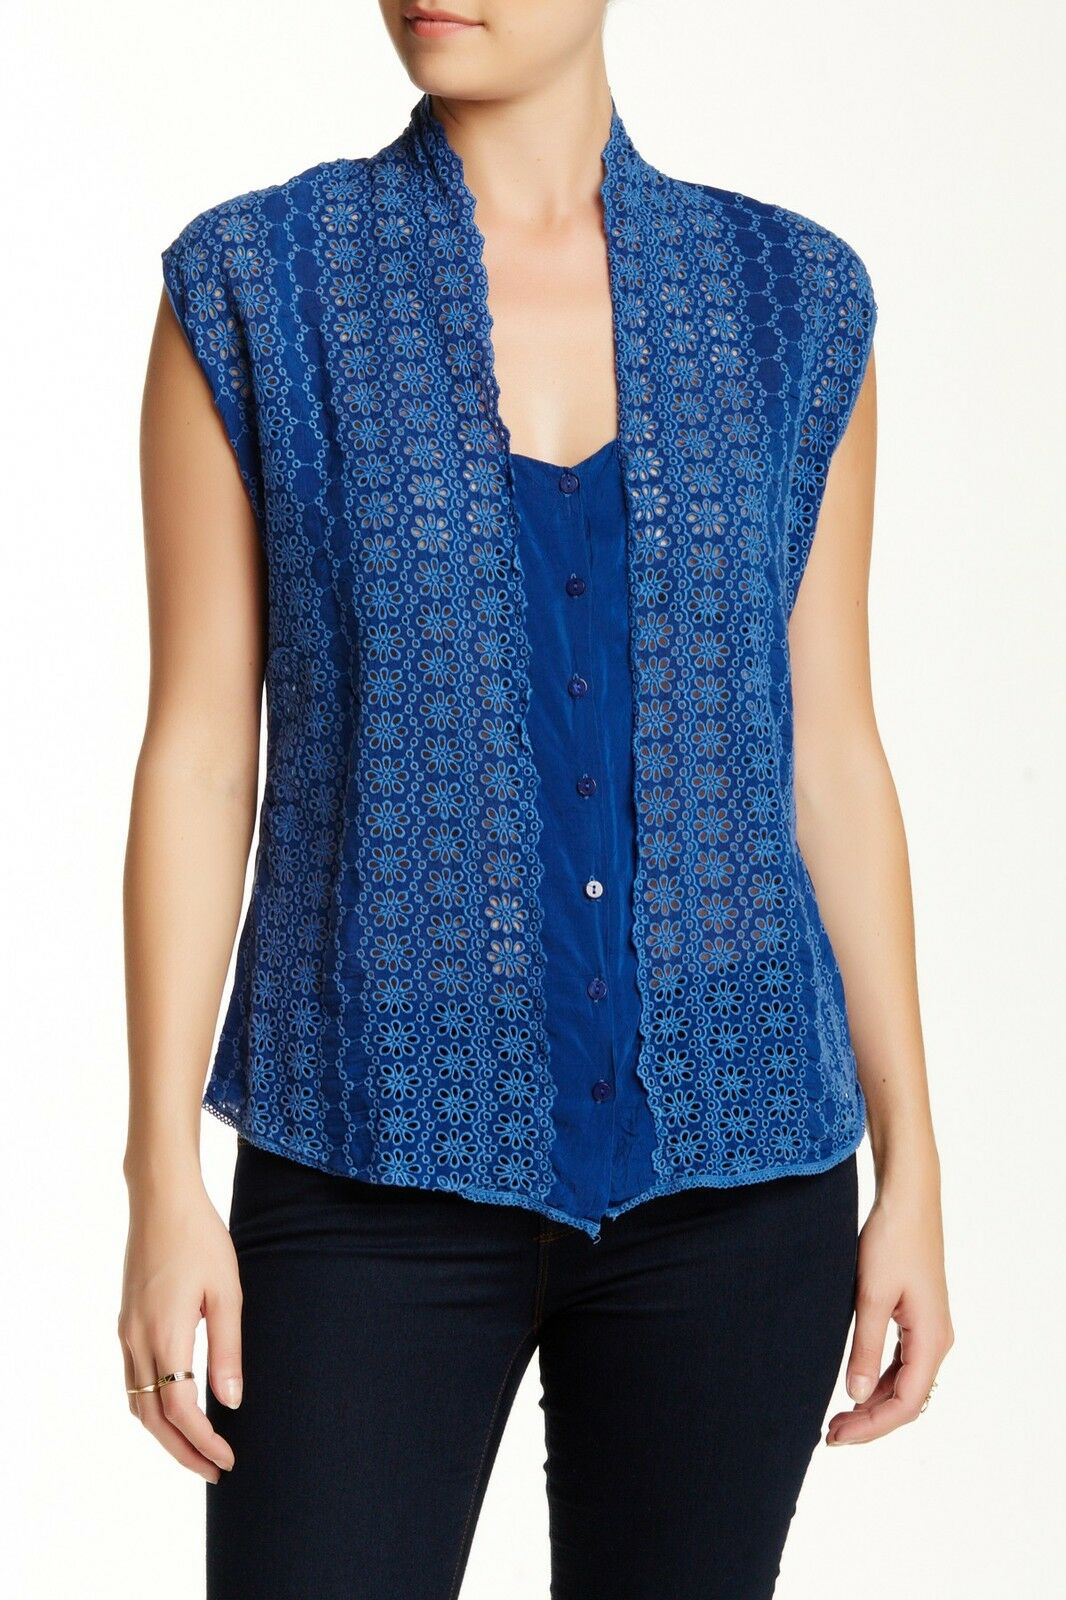 NWT Johnny Was Large Eyelet Vest in Blau Floral Embroiderot Sheer Top S